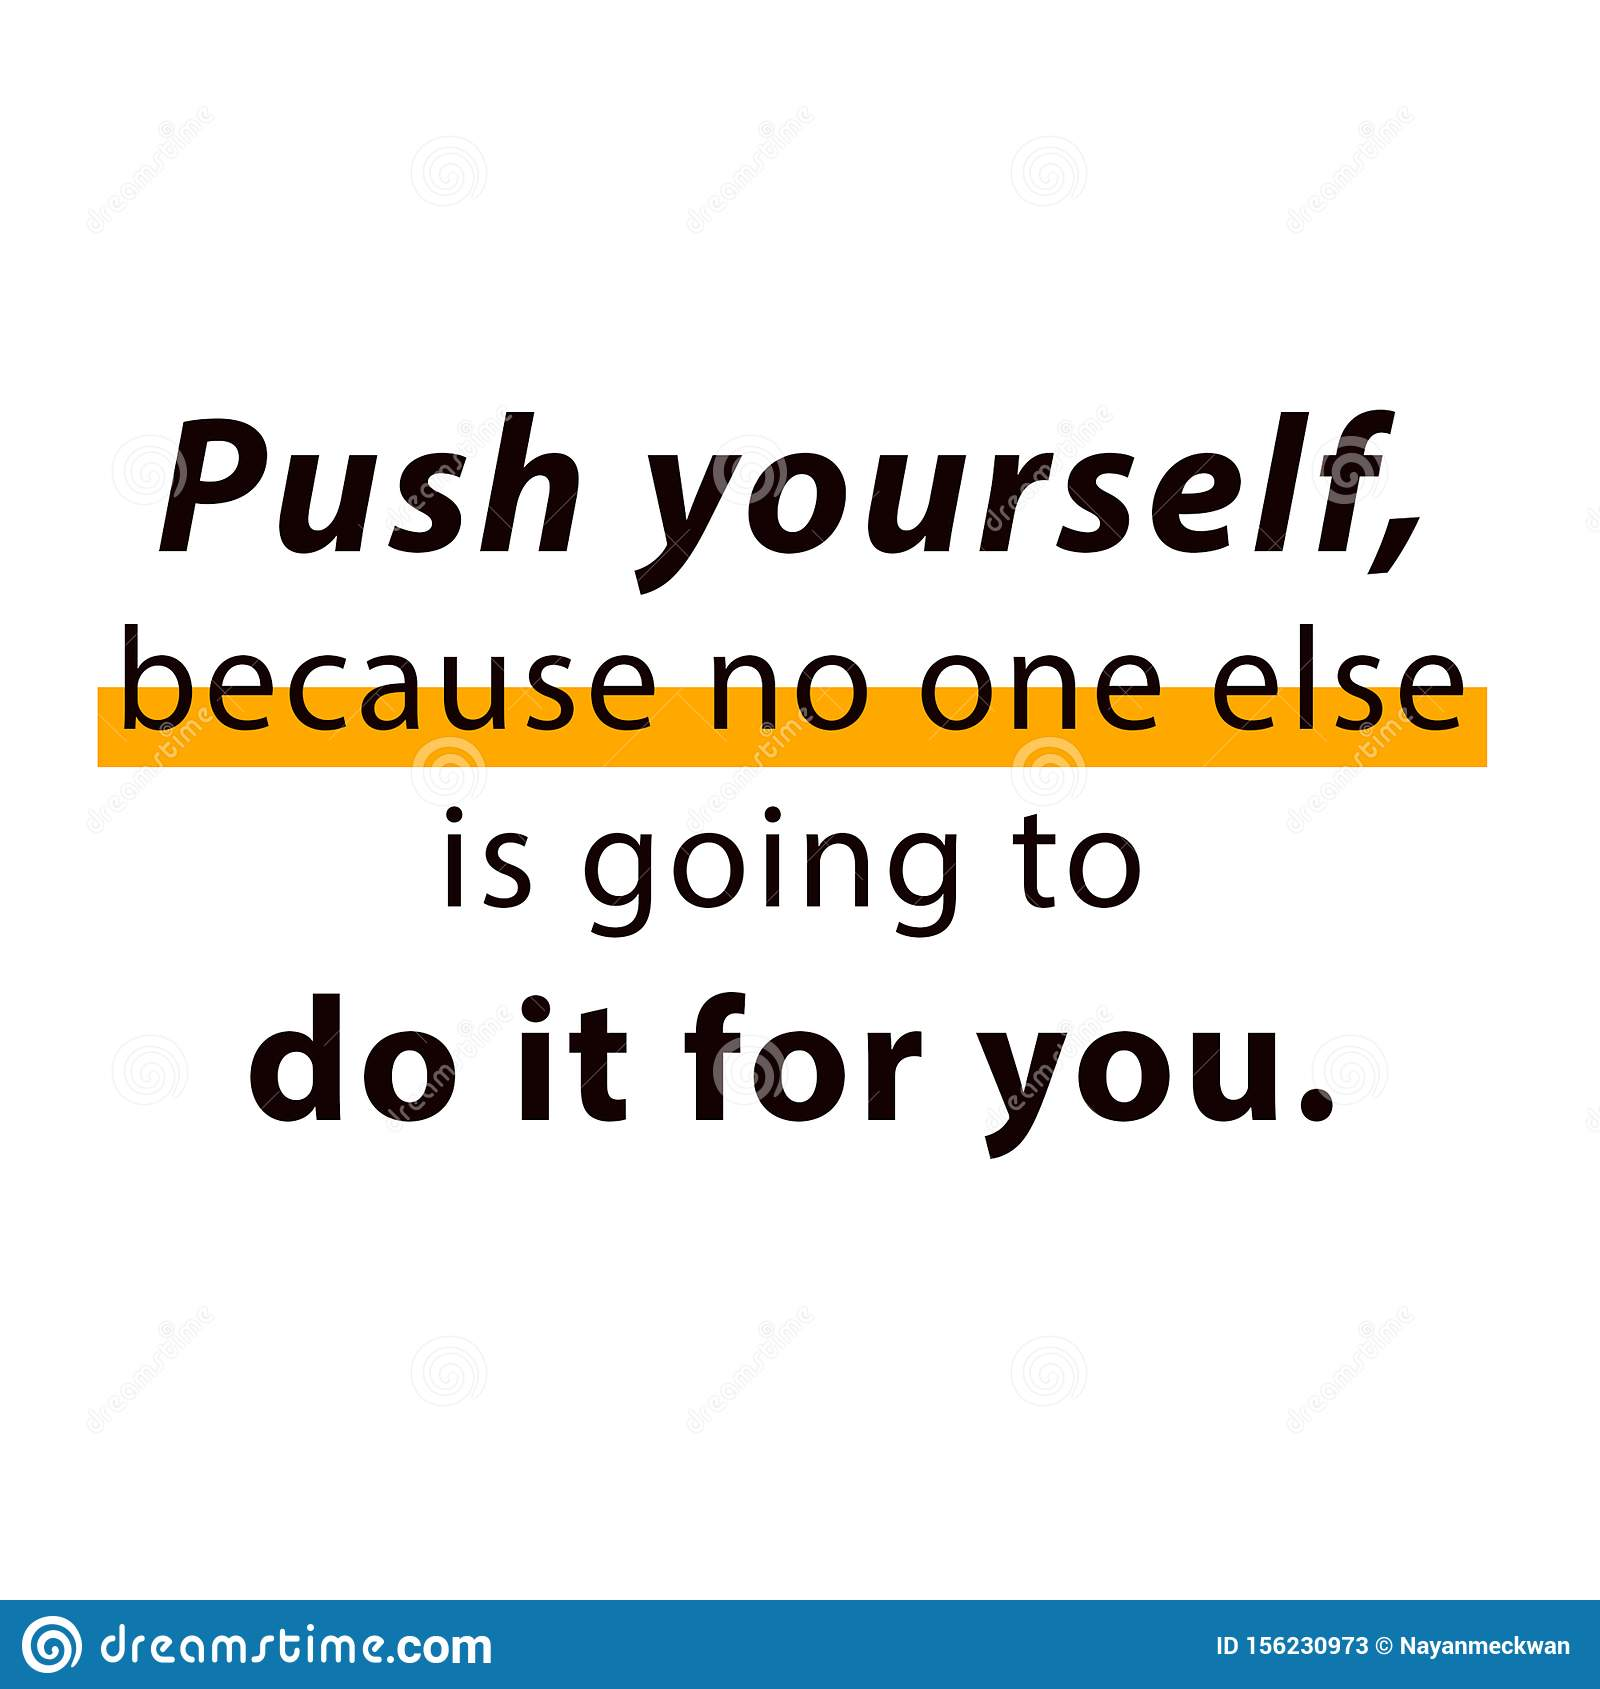 Motivational Quotes For Work Stock Vector - Illustration of